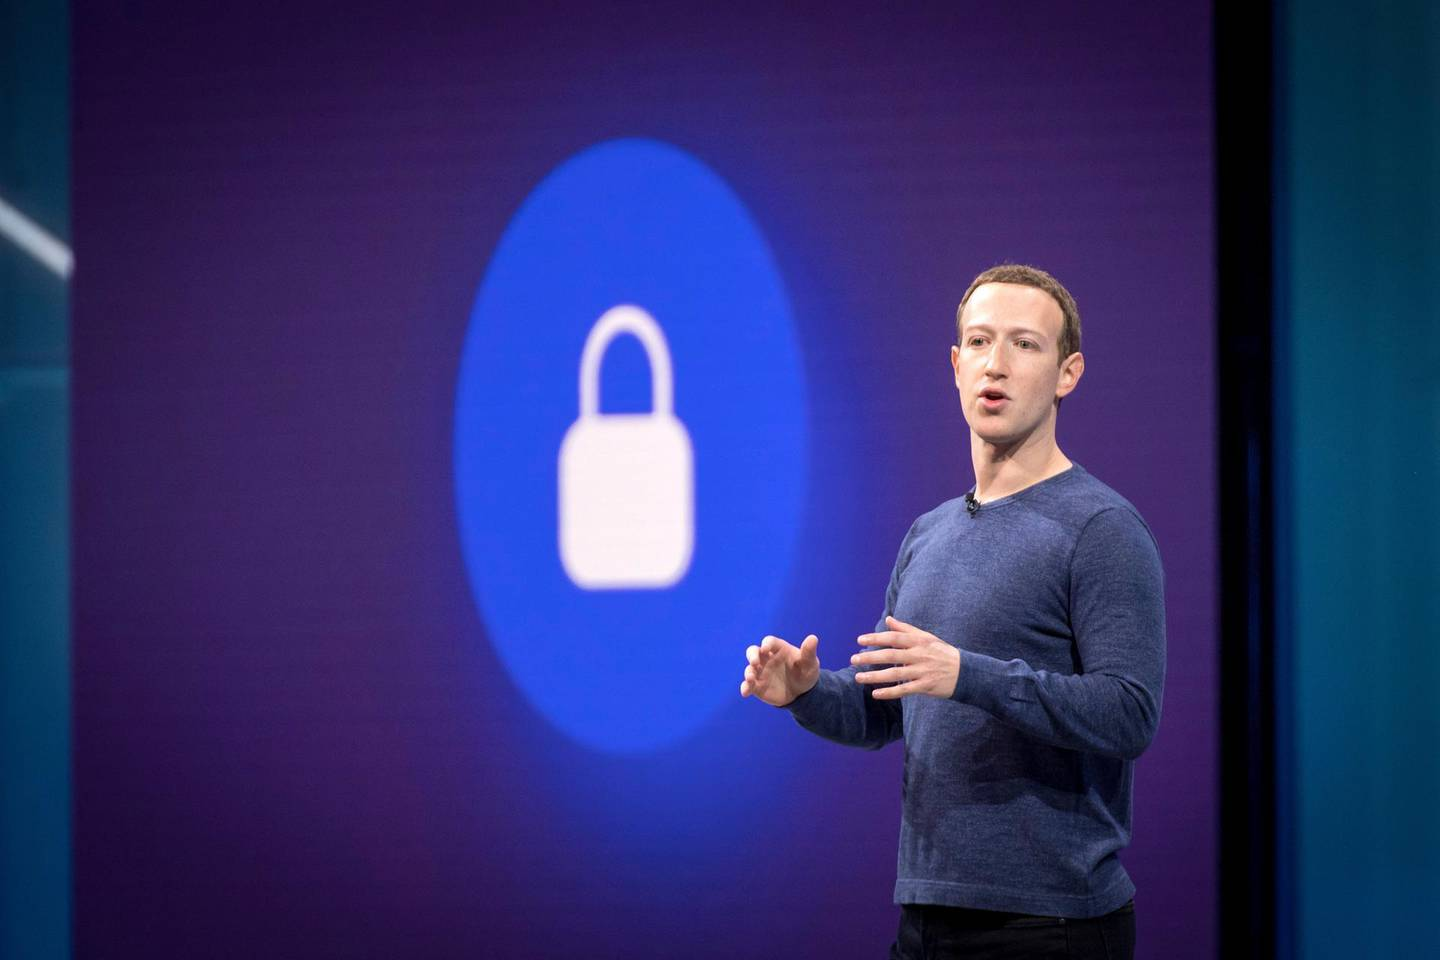 Mark Zuckerberg, chief executive officer and founder of Facebook Inc., speaks during the F8 Developers Conference in San Jose, California, U.S., on Tuesday, May 1, 2018. Zuckerbergsaid that he learned, while testifying in front ofCongresslast month, that he didn't have clear enough answers to questions about data and Facebook should offer users this kind of option to control their information. Photographer: David Paul Morris/Bloomberg